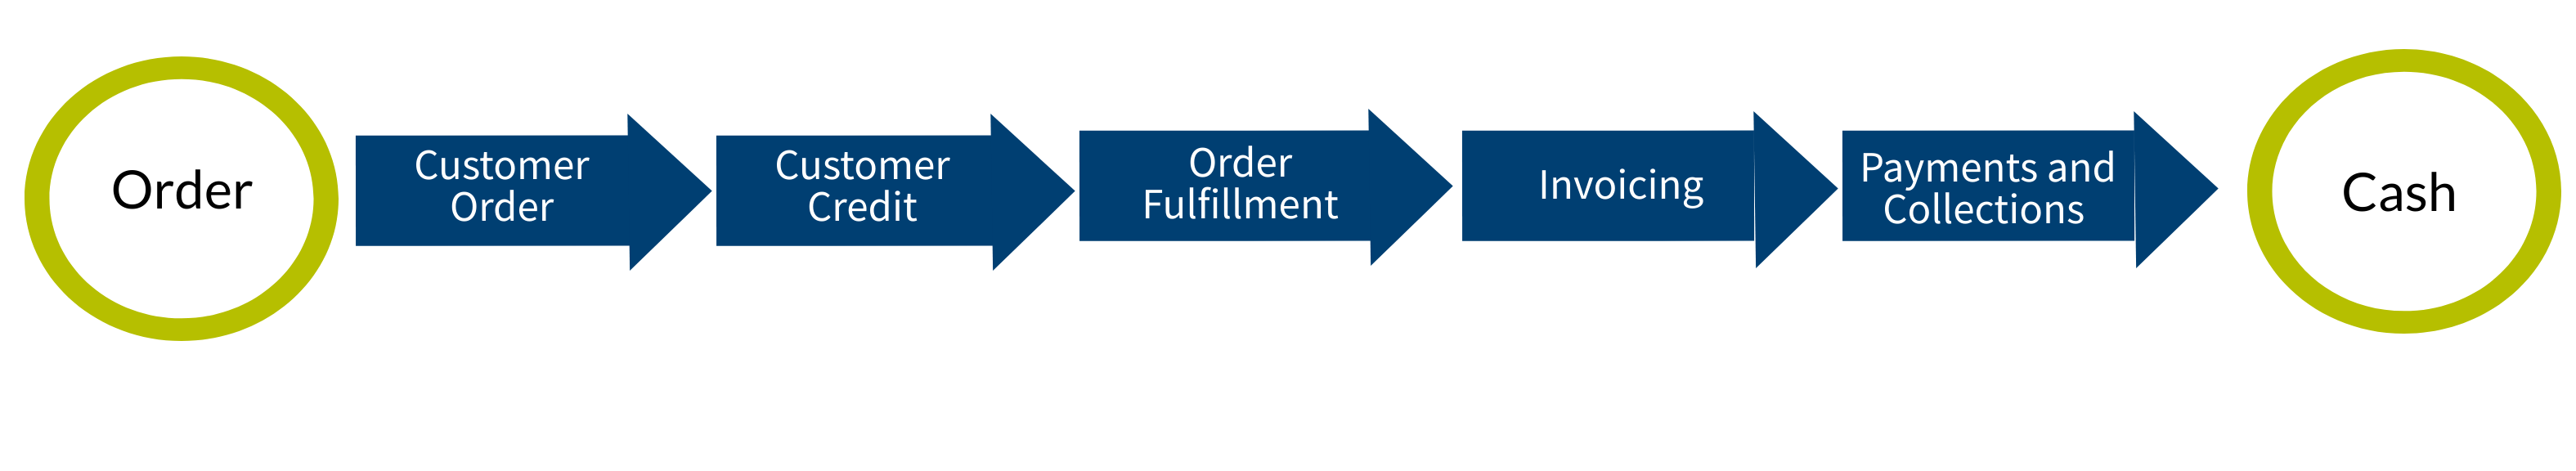 End-to-End Order-to-Cash Process